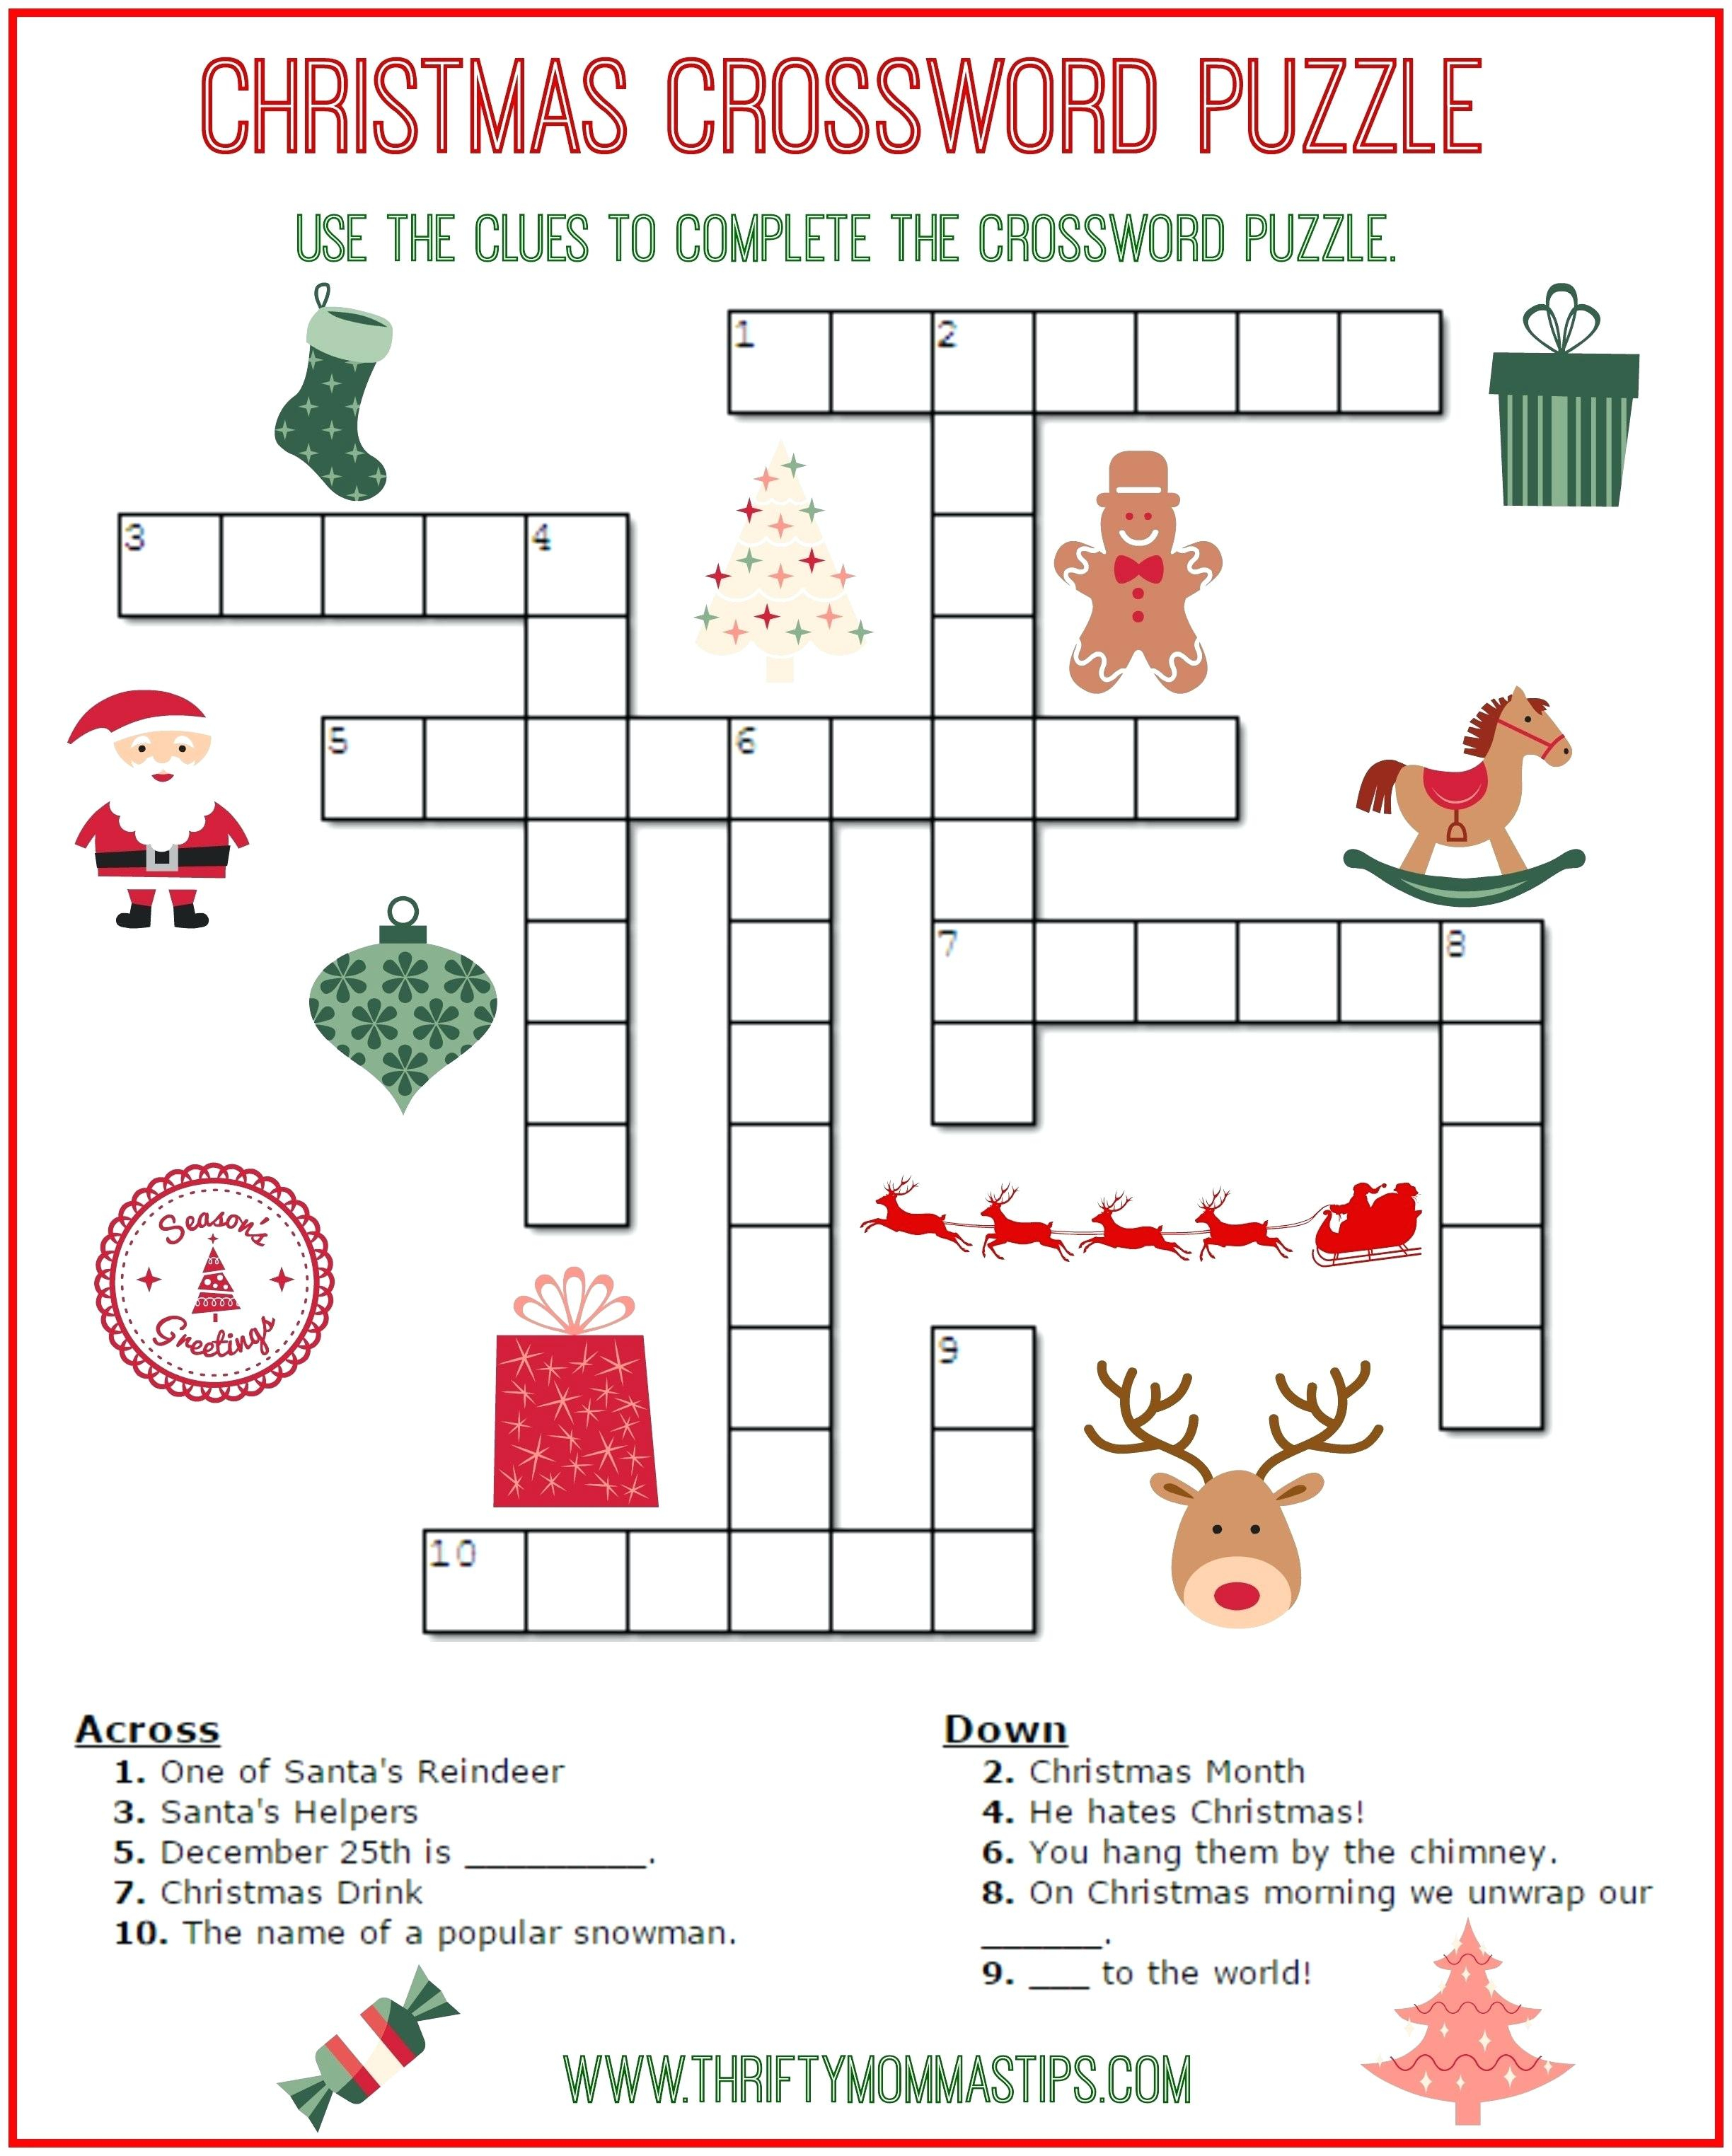 Free Printable Crossword Puzzles For Kids State Capitals Crossword - Printable Crossword Puzzles For Grade 2